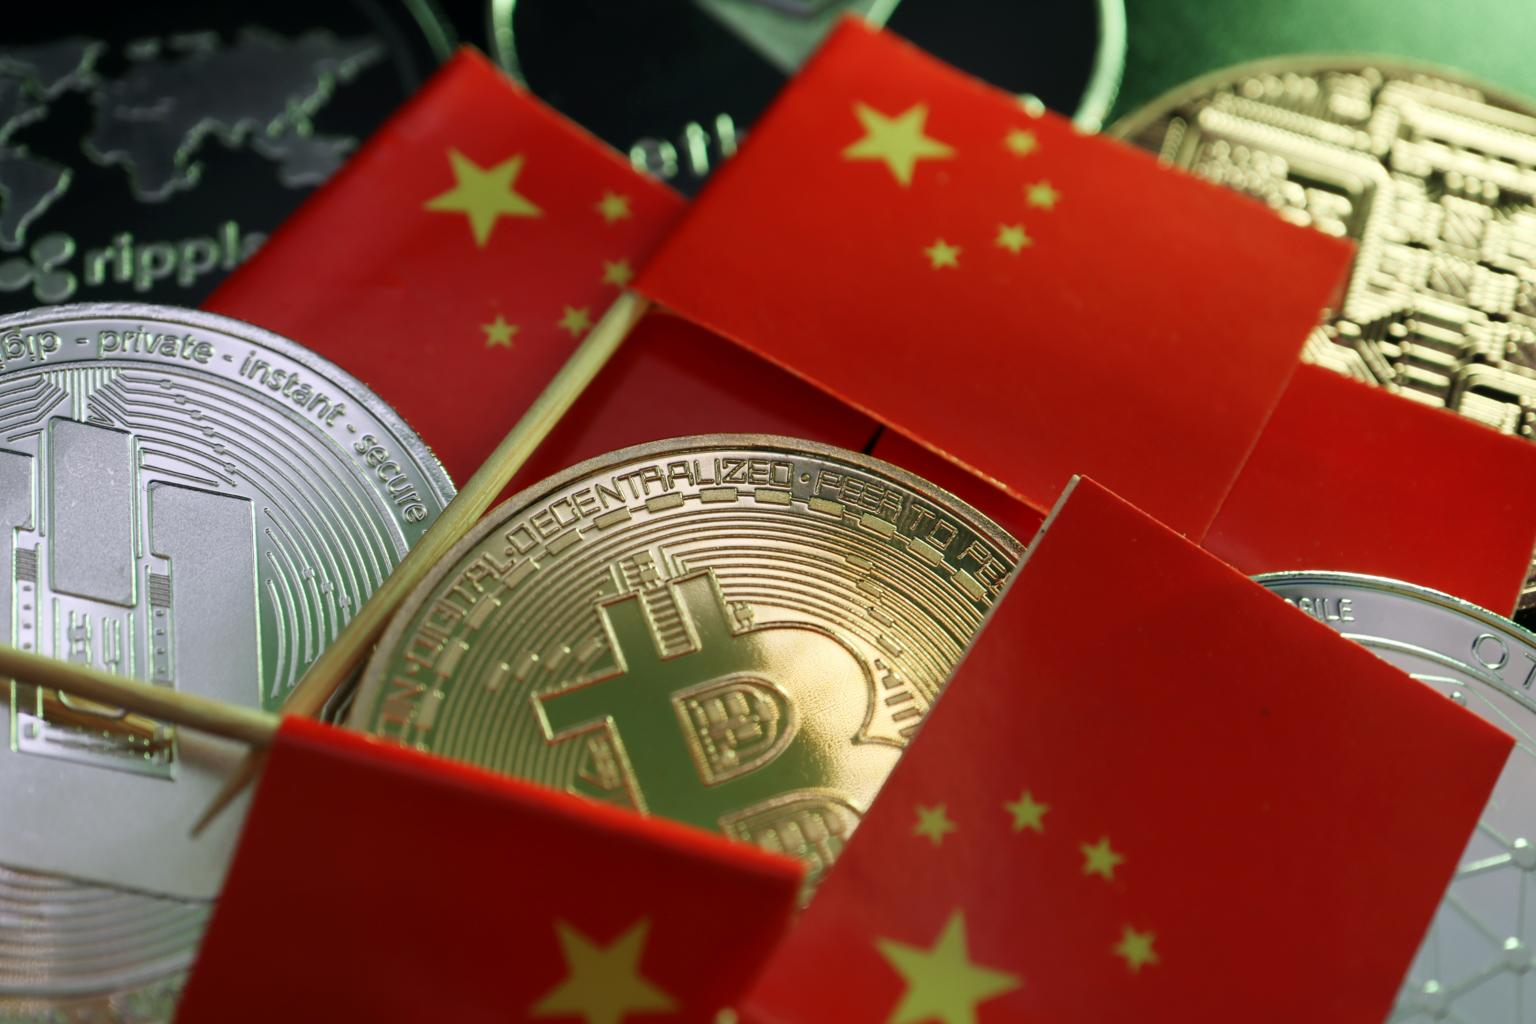 illicit cryptocurrency transactions have dropped sharply in China